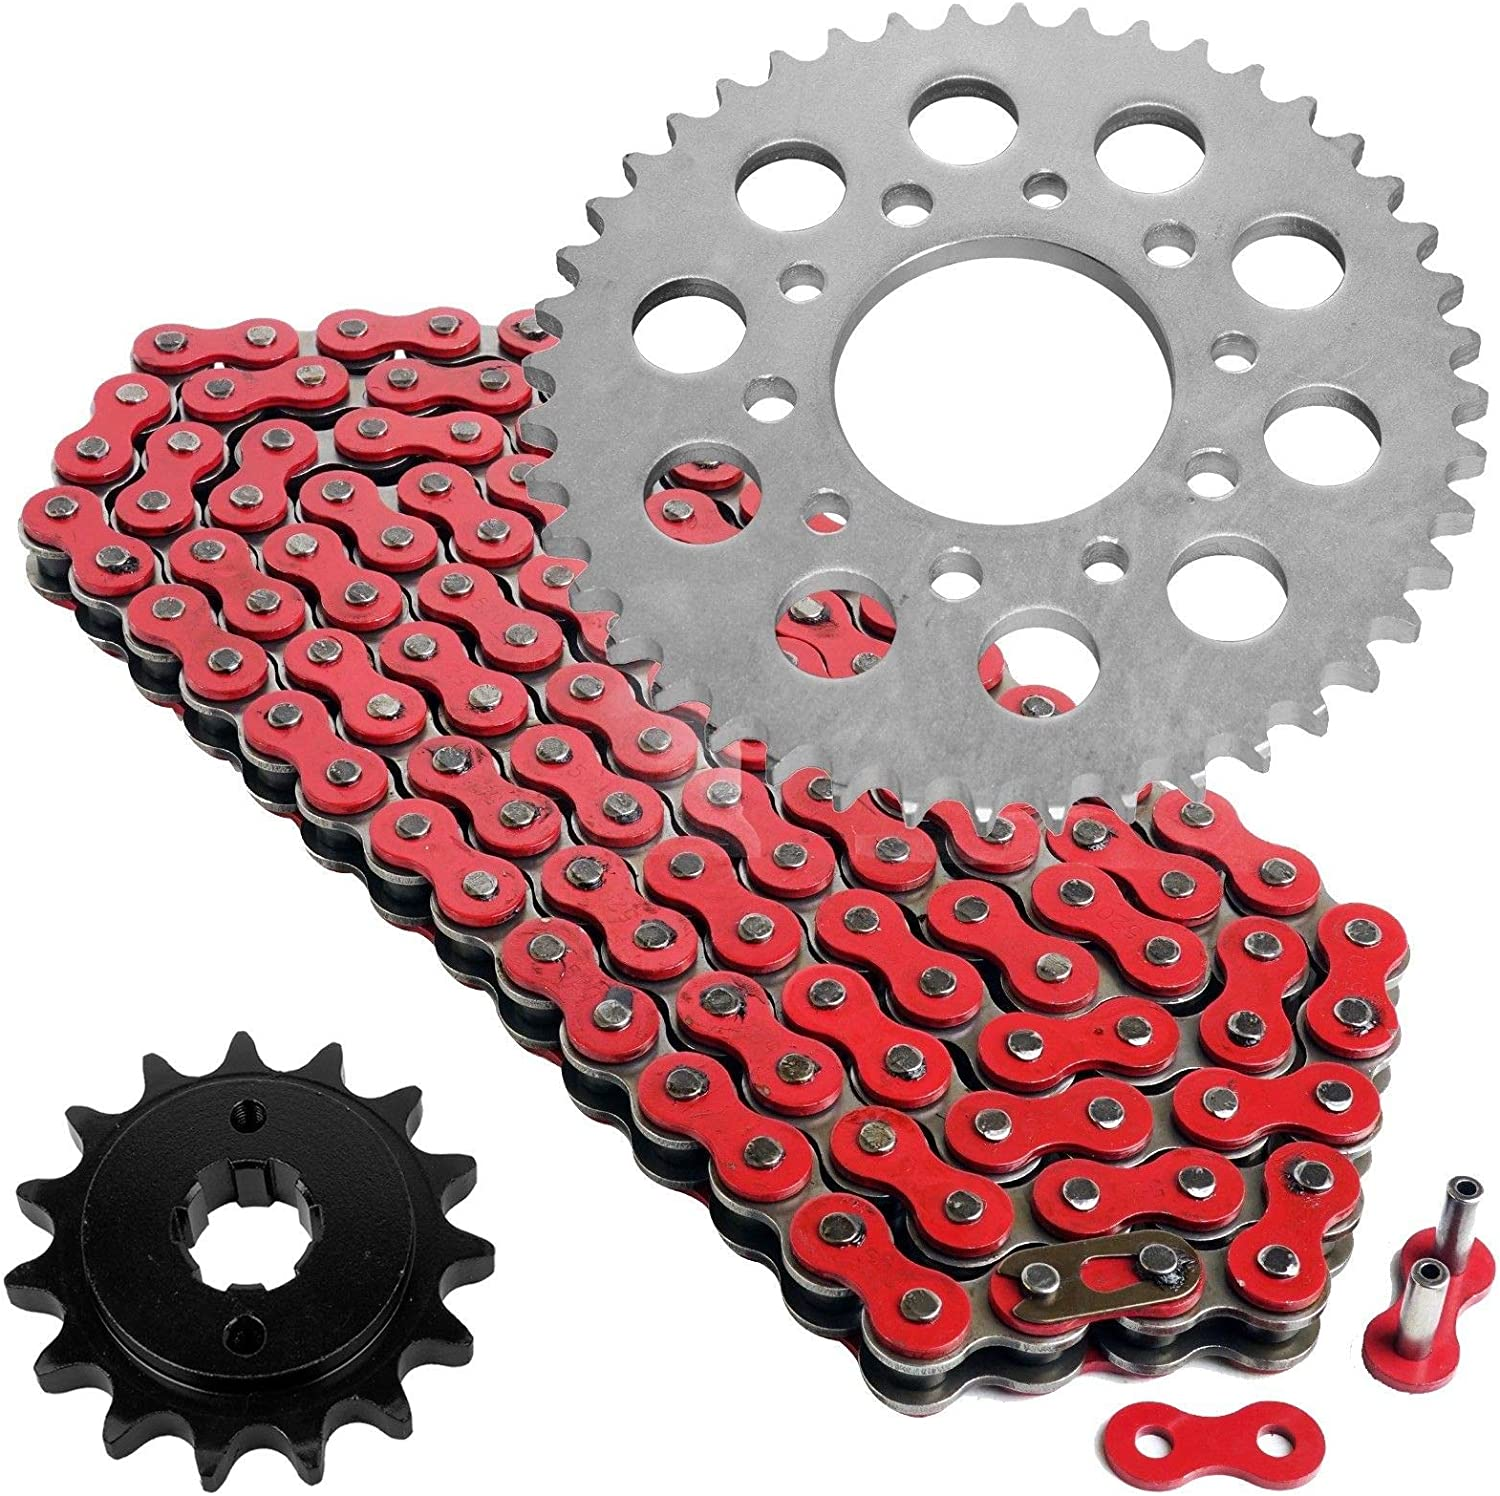 Caltric depot Red Drive Chain and Sprocket Kit Compatible Honda with V Price reduction